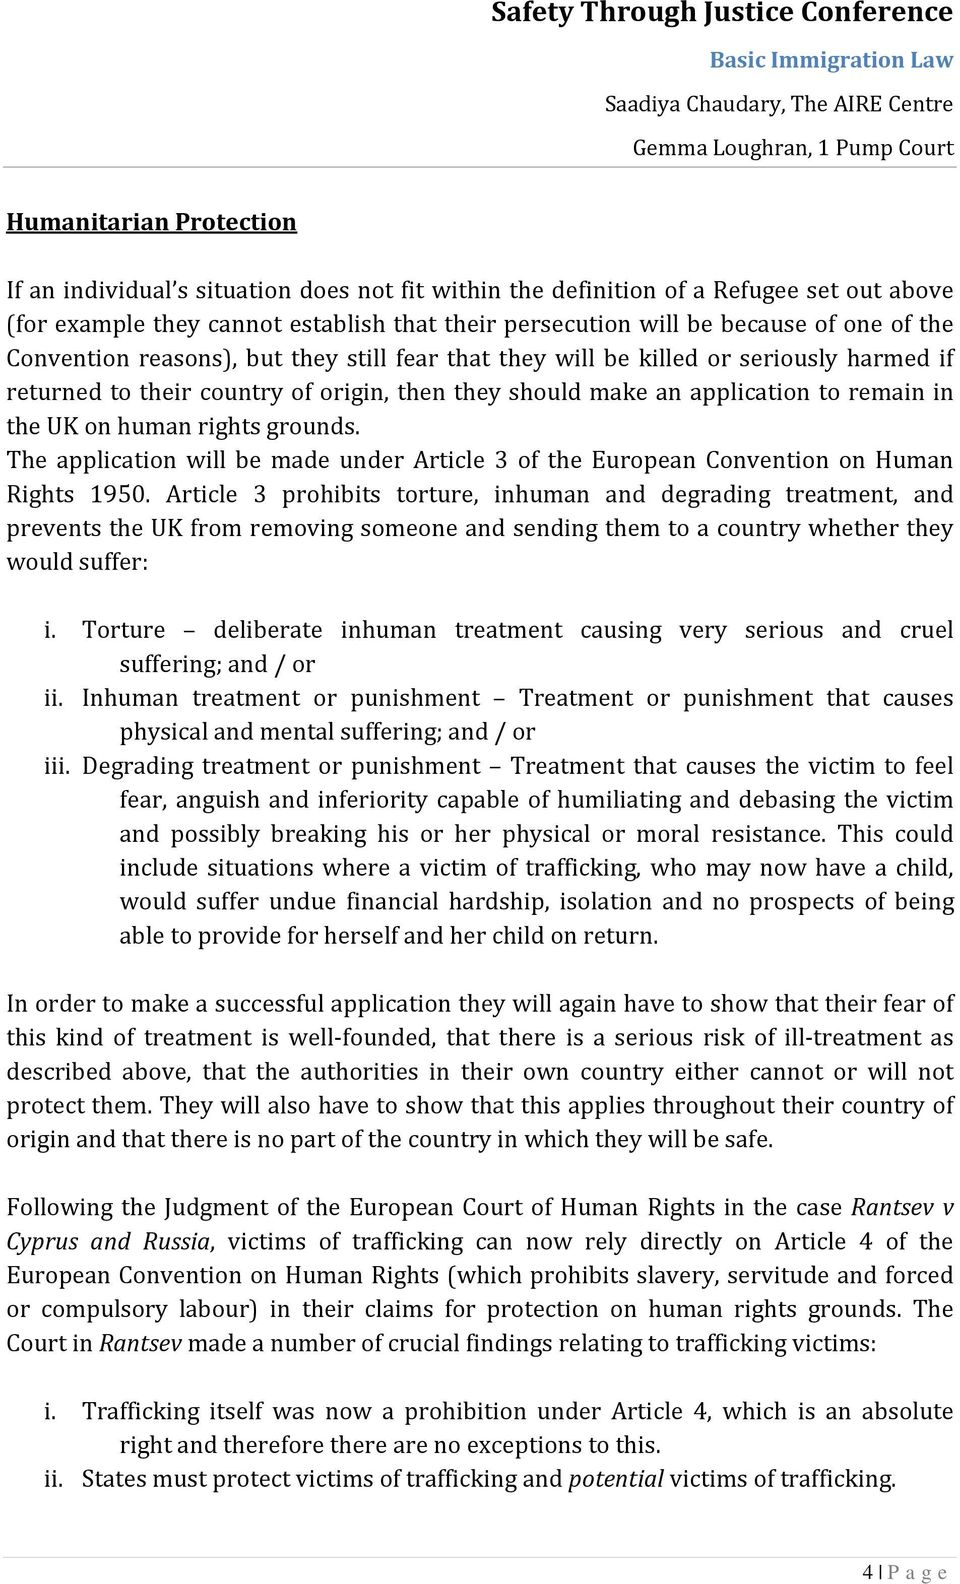 rights grounds. The application will be made under Article 3 of the European Convention on Human Rights 1950.